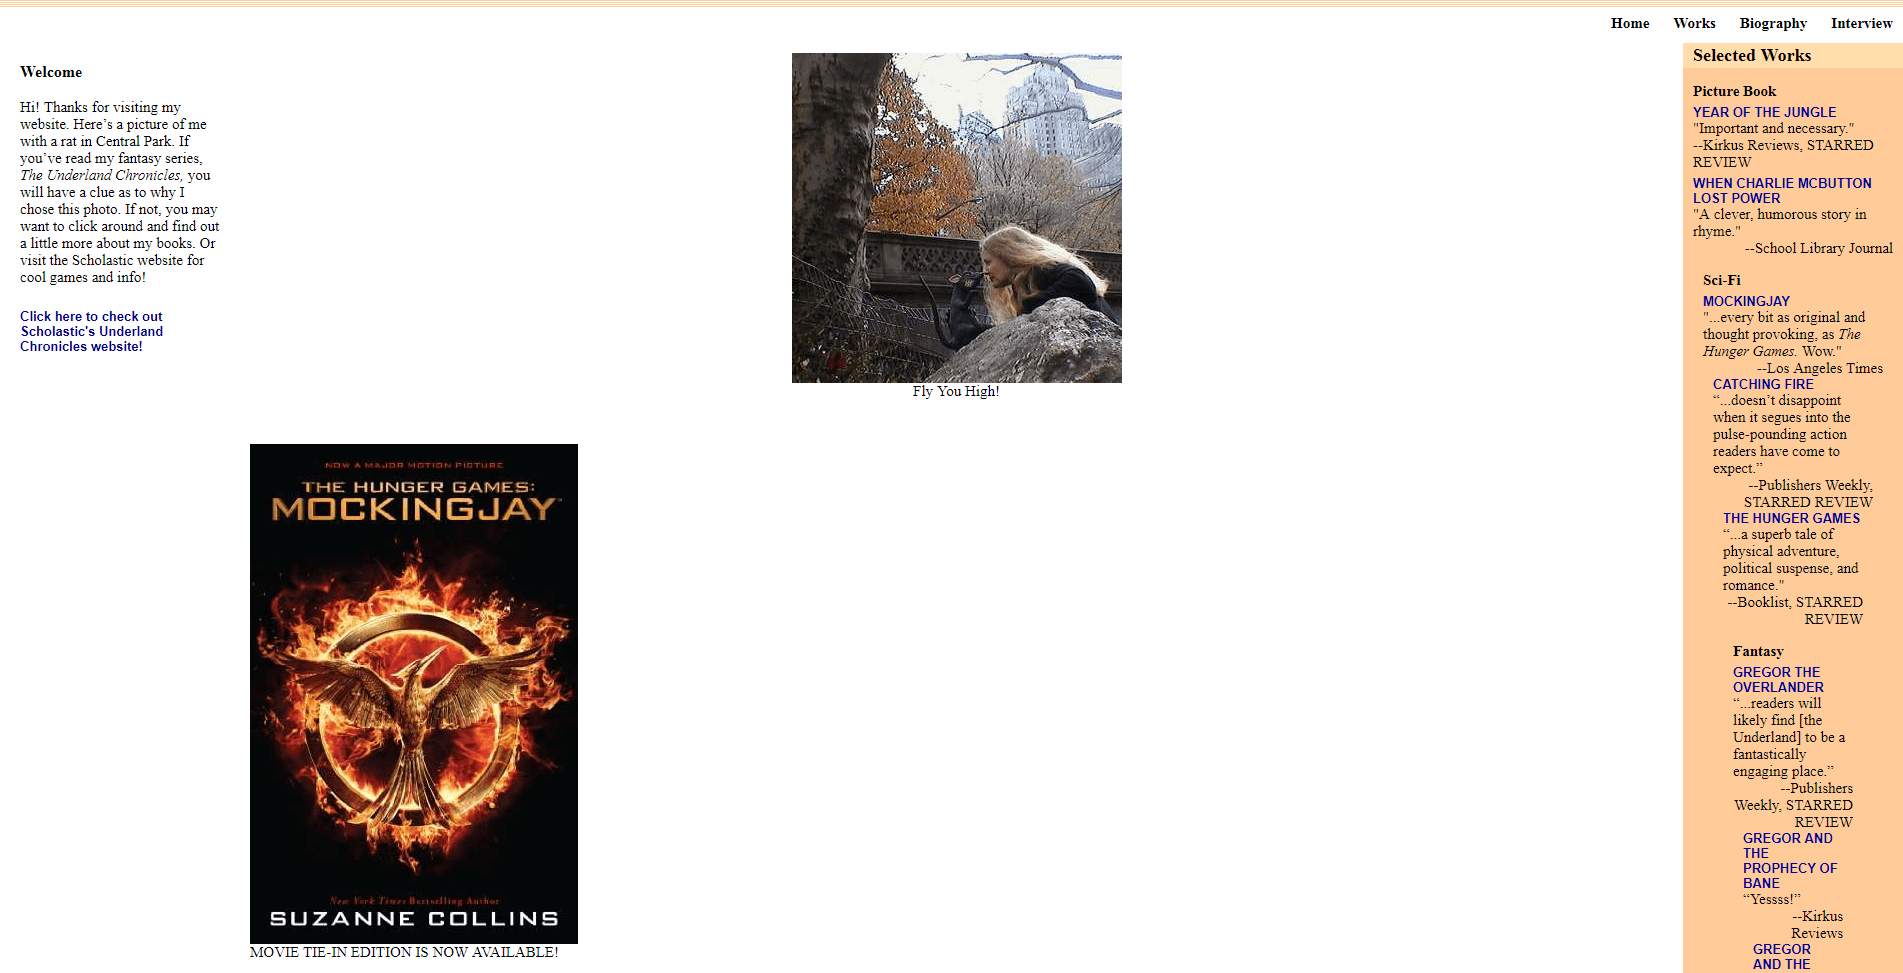 Suzanne Collins' website.